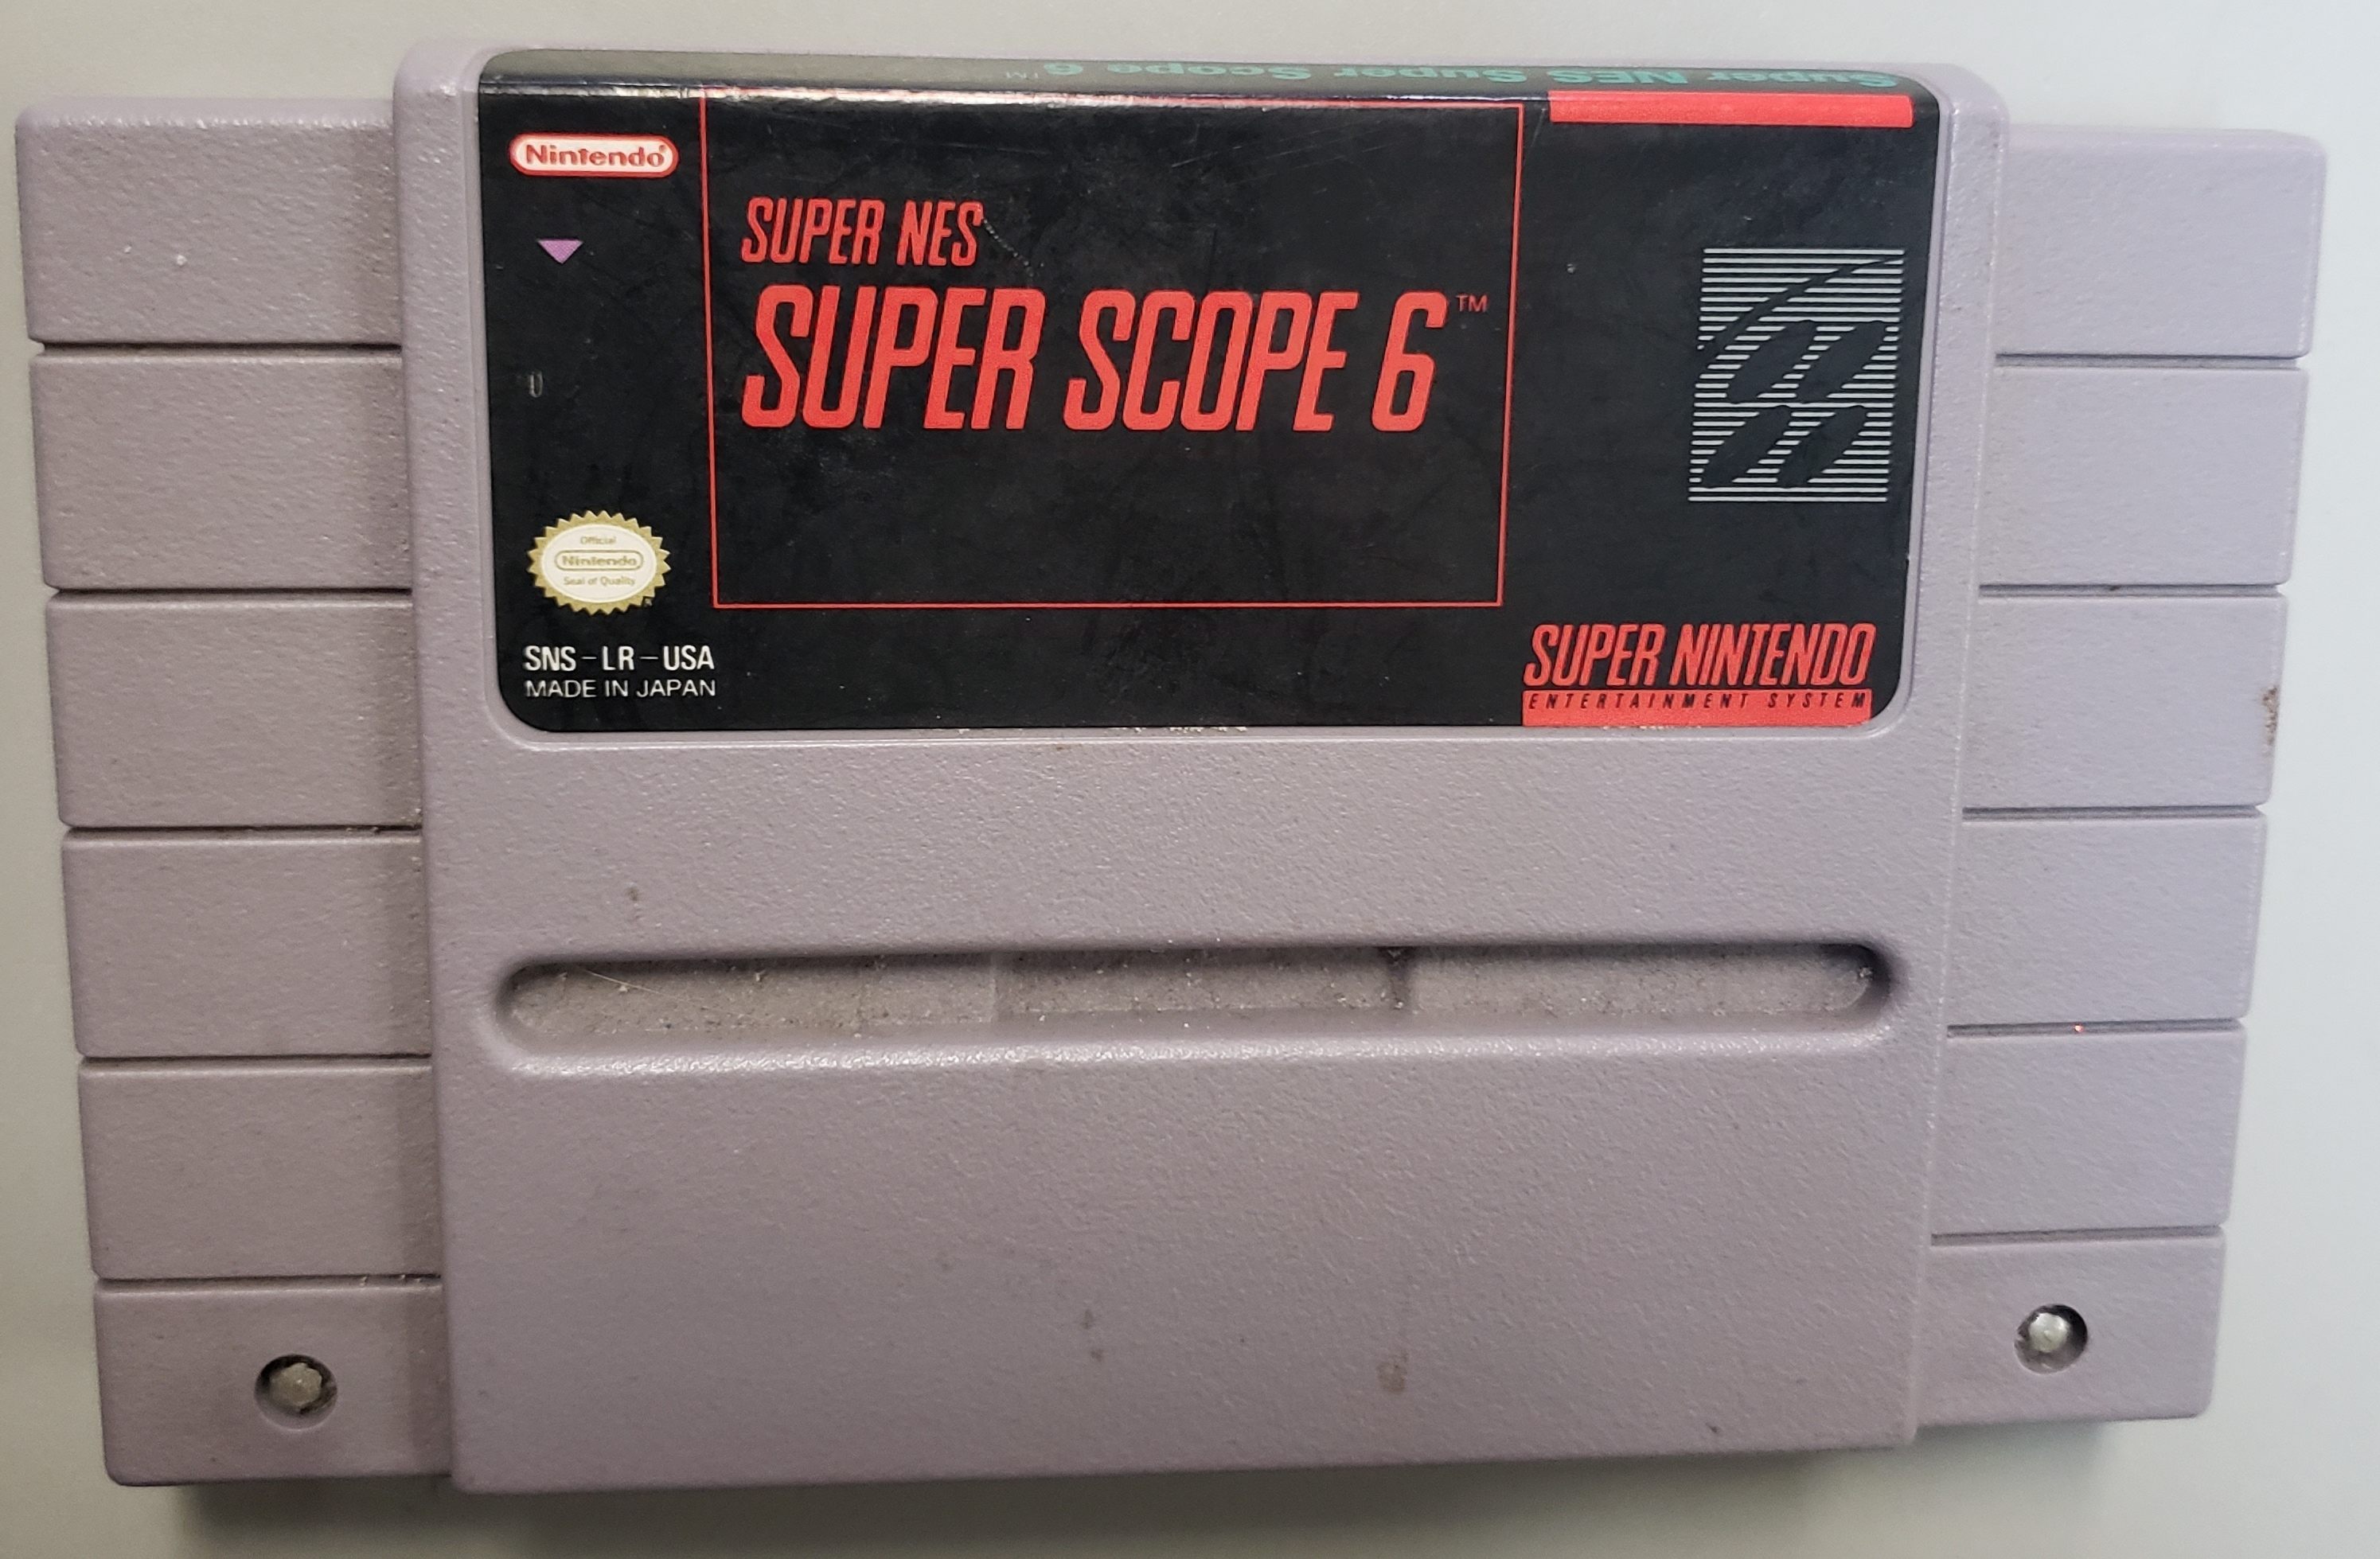 SUPER NES SUPER SCOPE 6 - SUPER NINTENDO GAME